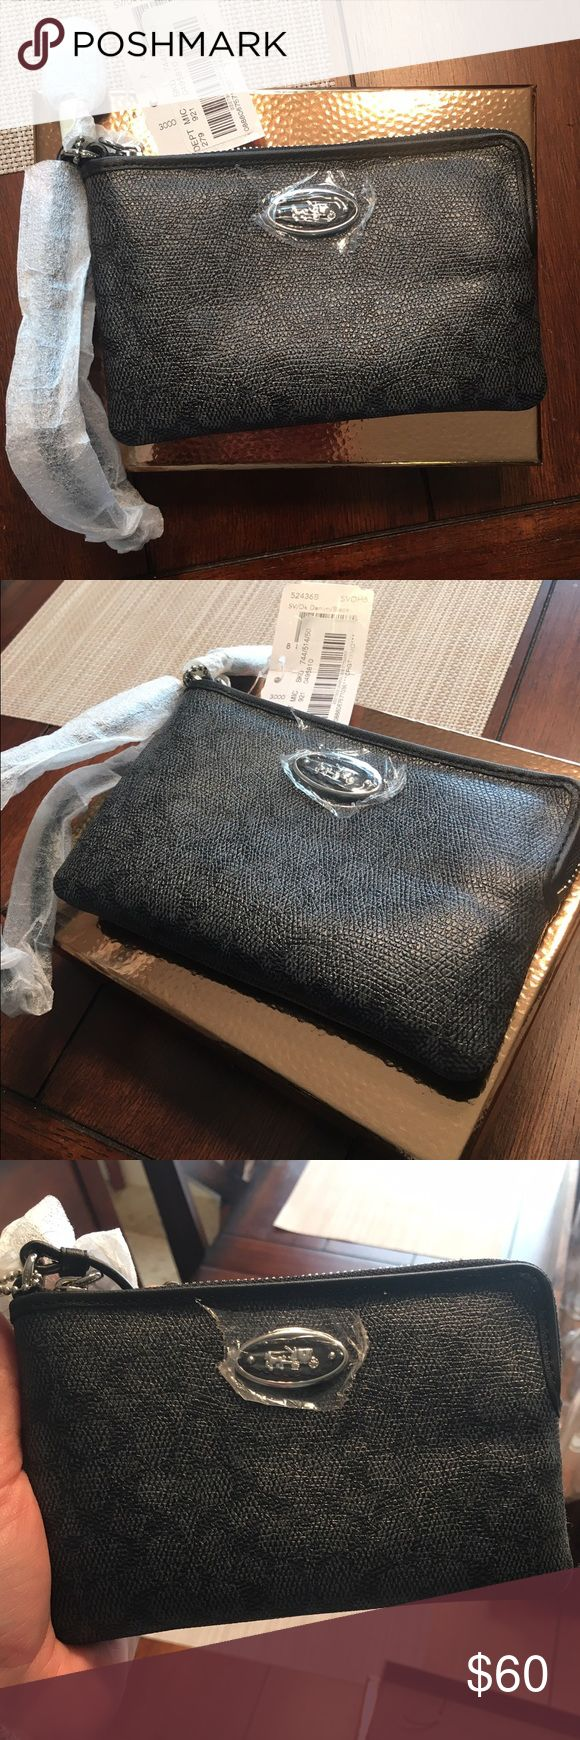 NWT Coach Clutch NWT Black Coach Clutch. NEW with tags, has never even been taken out of the wrapping. It also has an attachable strap to wear as a cross body bag. No trades please. Coach Bags Clutches & Wristlets